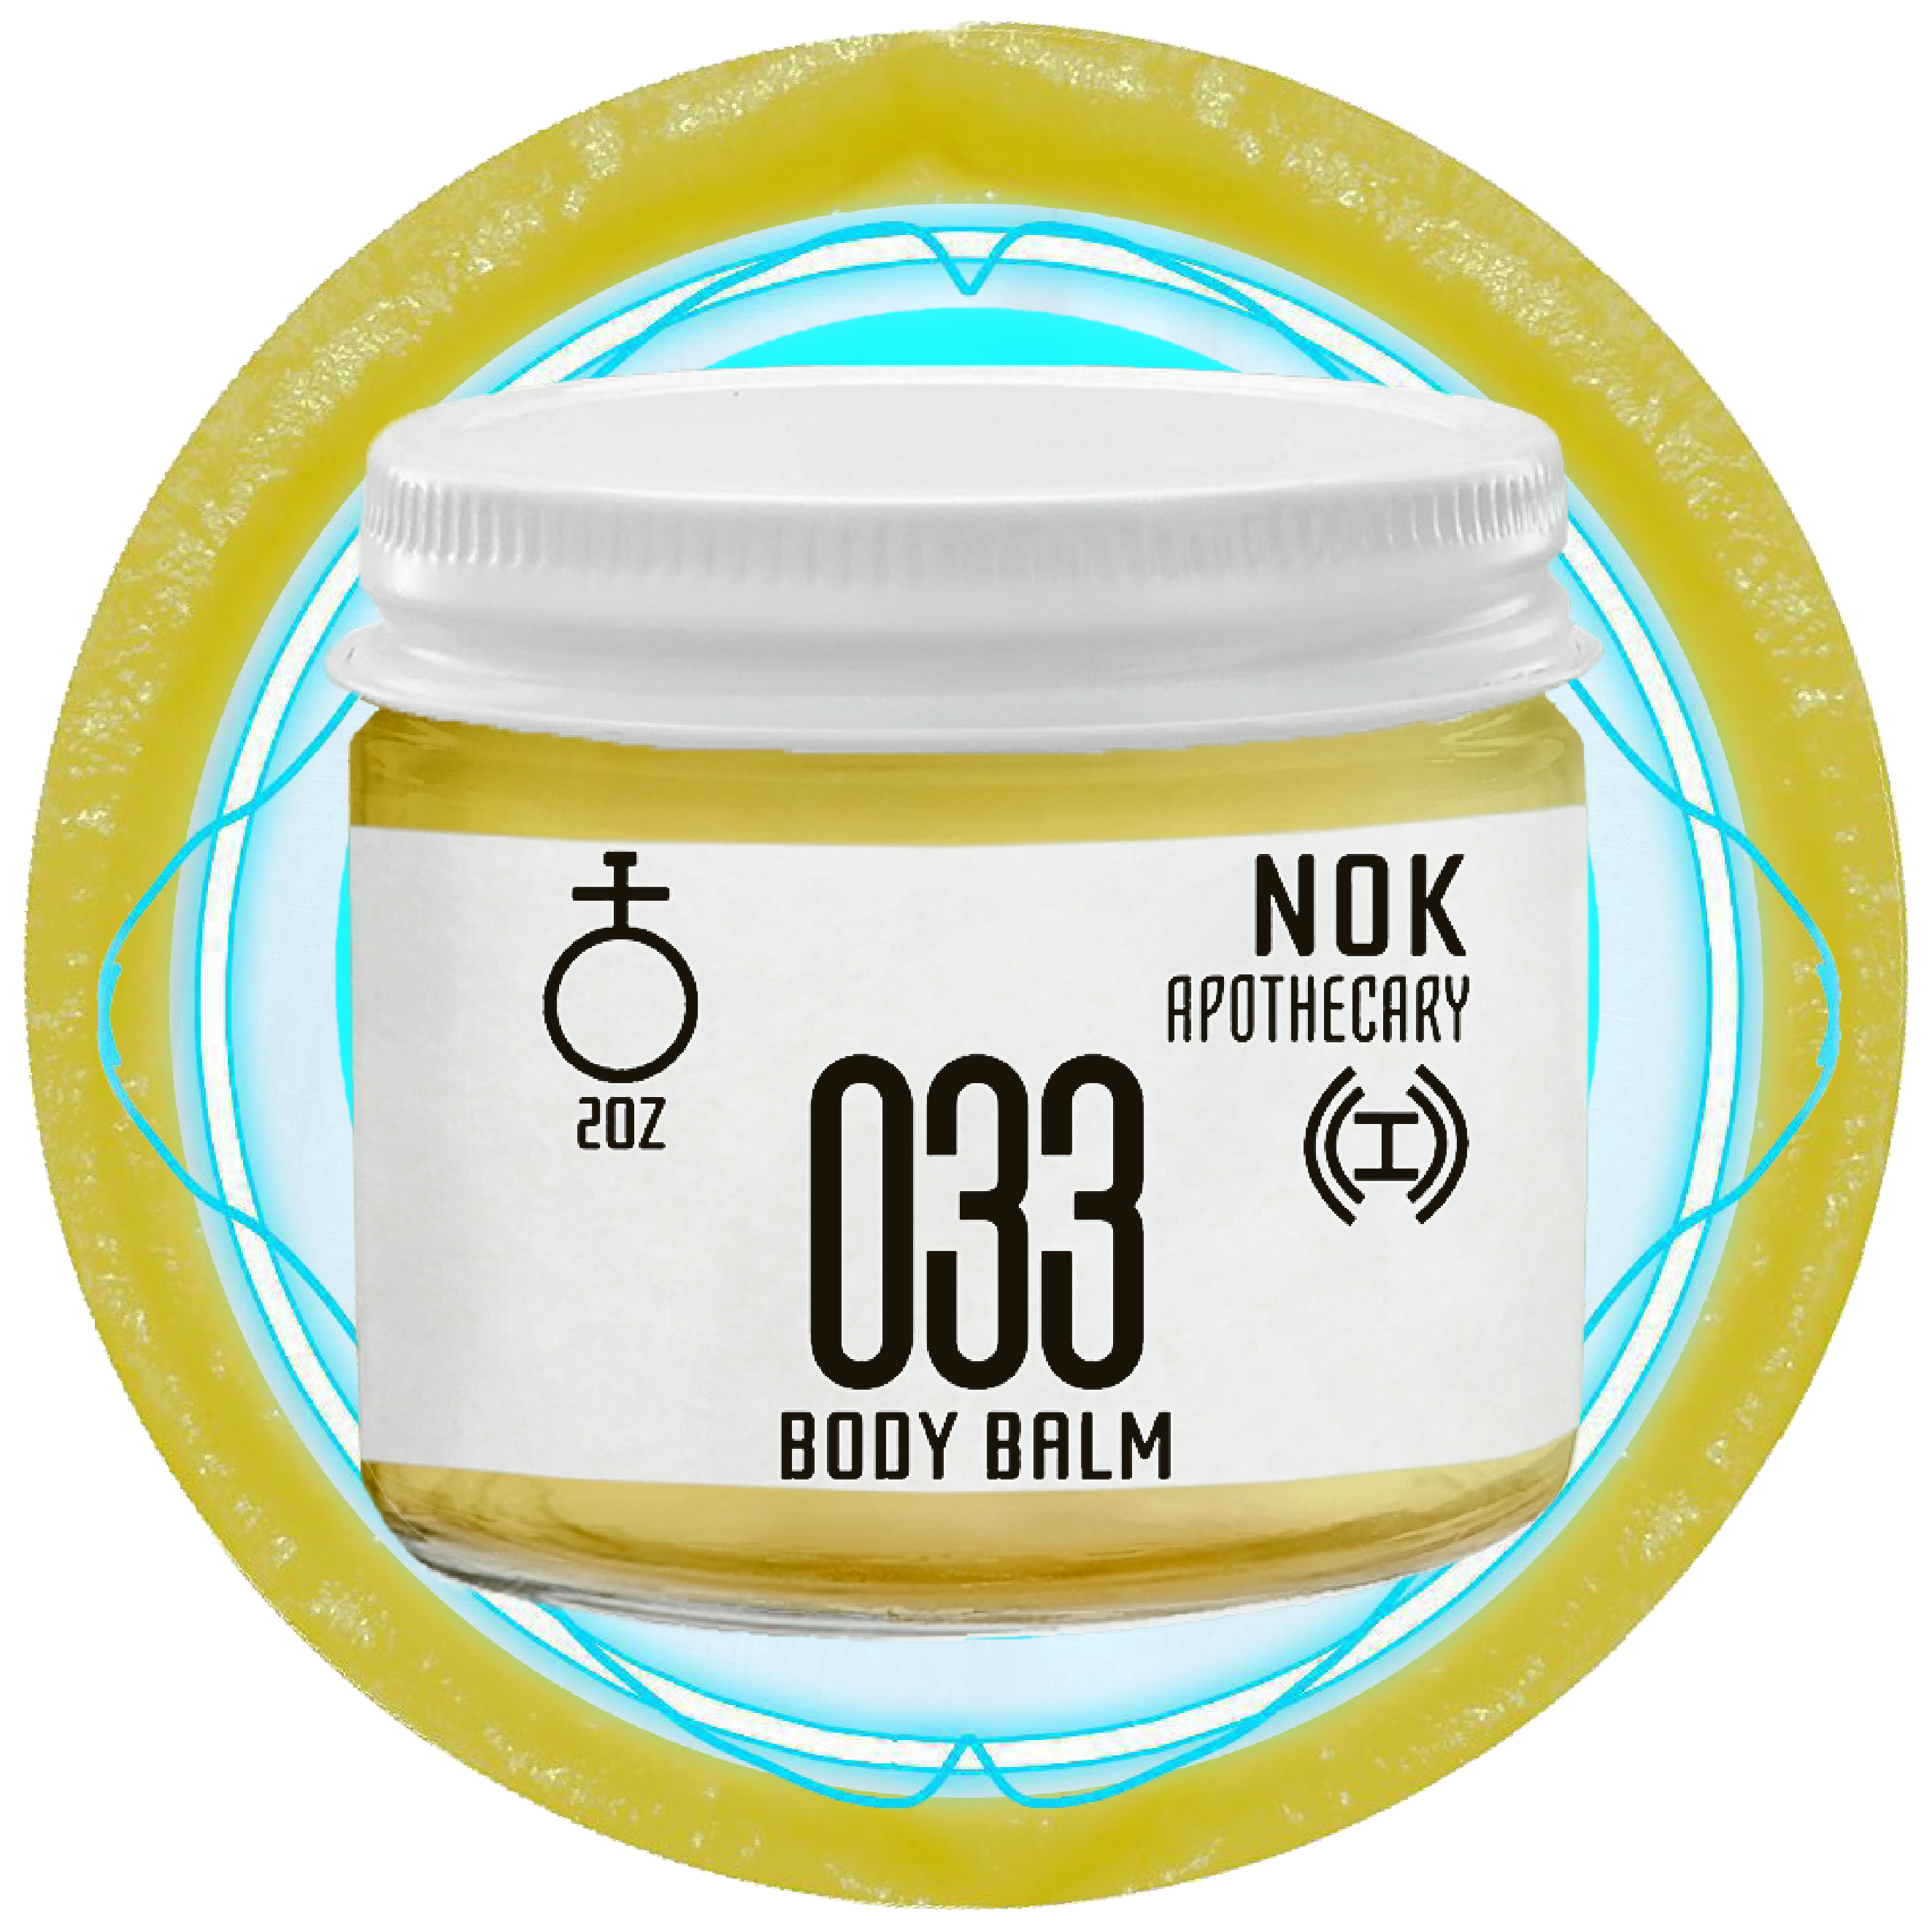 Shea + Coconut Body Balm | 033 - The Nok Apothecary